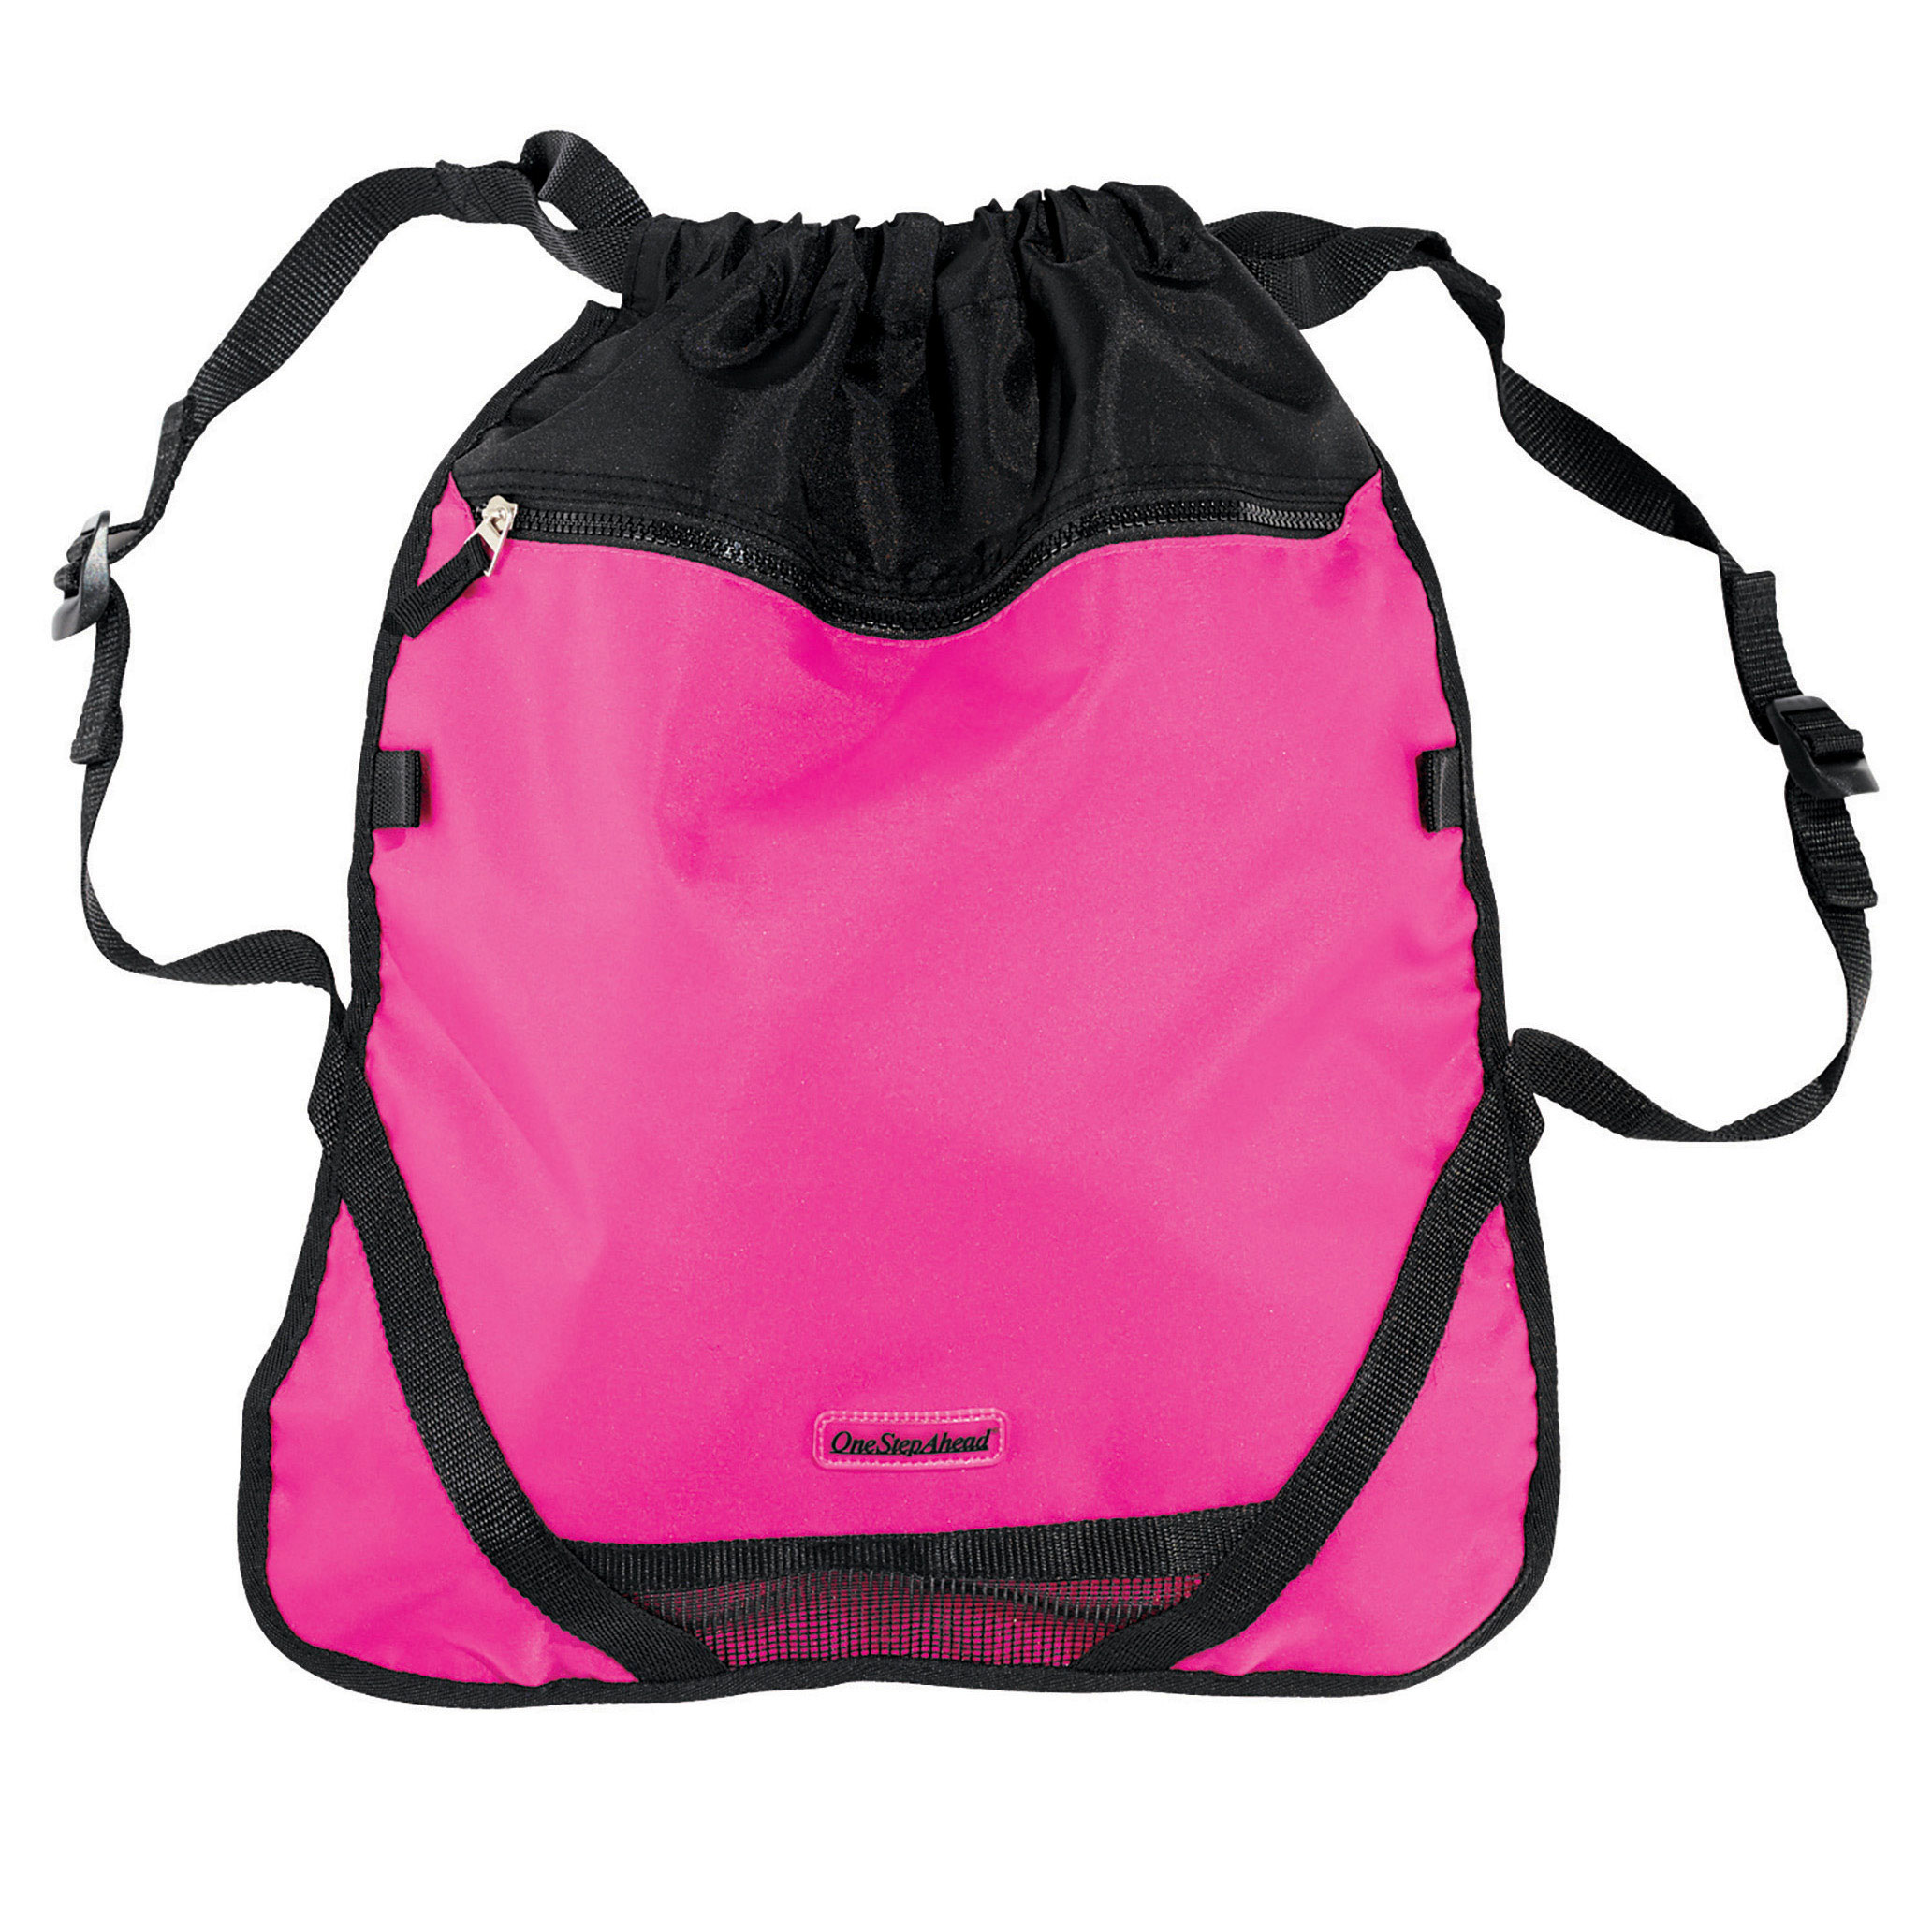 One Step Ahead Children's Pink Athletic Backpack - Lightweight Drawstring Bag